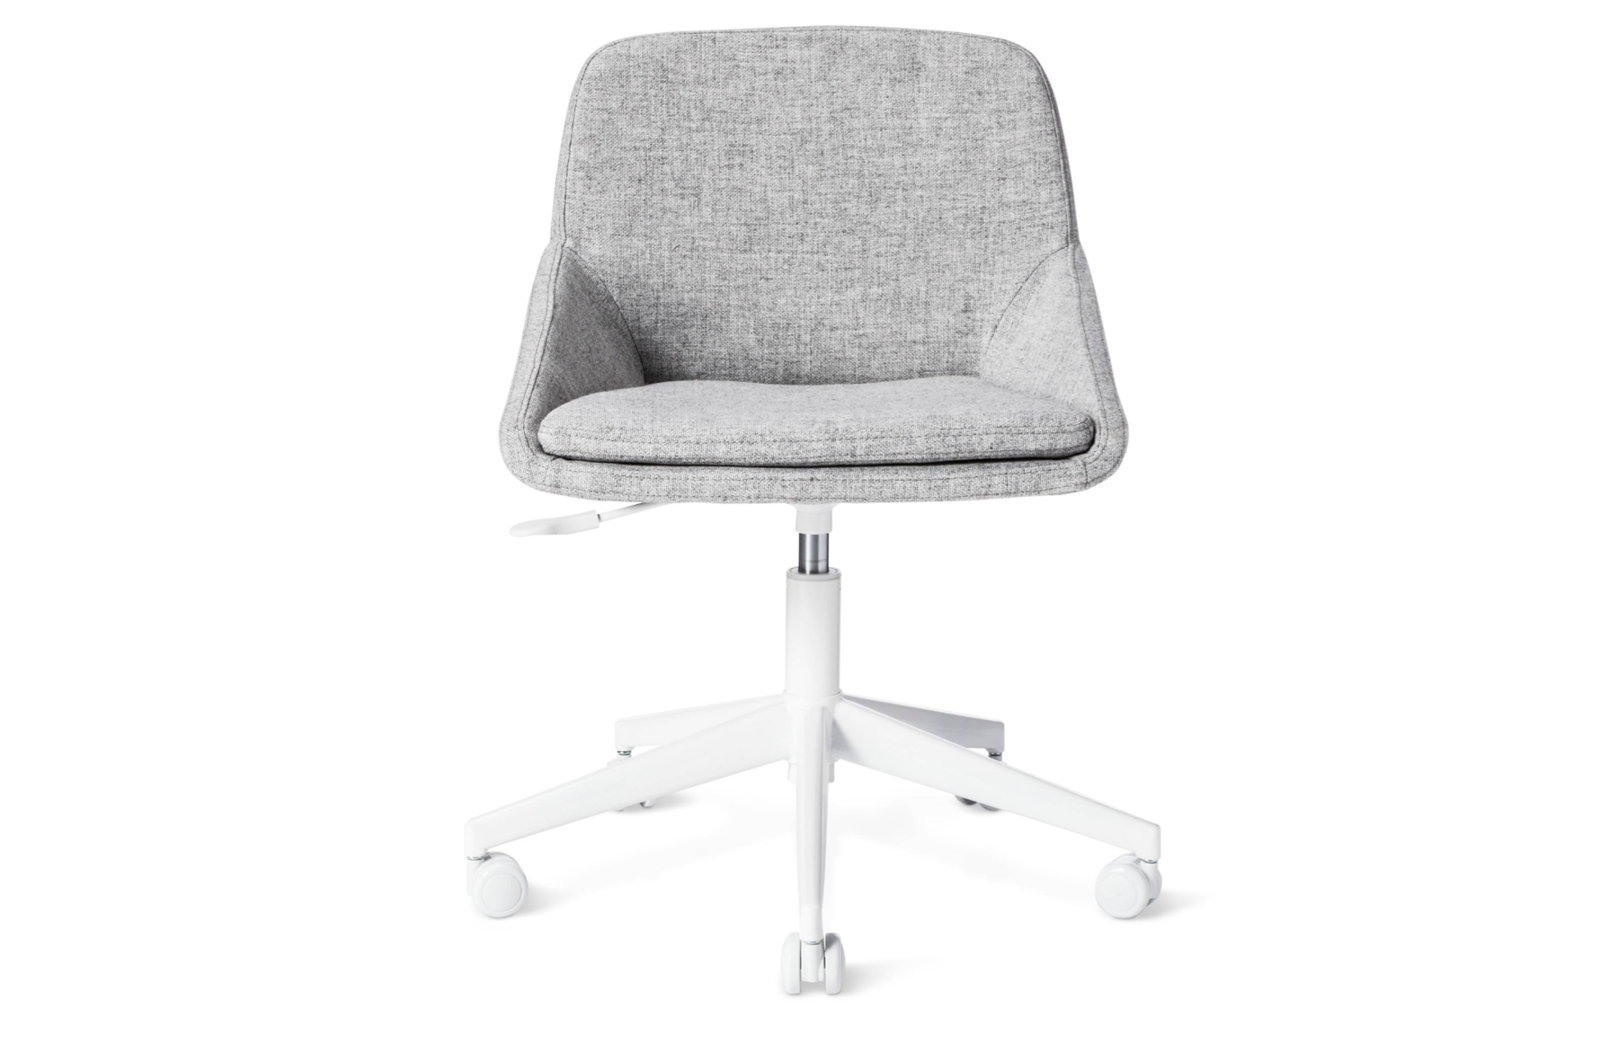 Awesome Epic Grey Office Chair 59 On Home Decor Ideas With Grey Office Chair Check More At Http Go Most Comfortable Office Chair Furniture Wooden Chair Plans